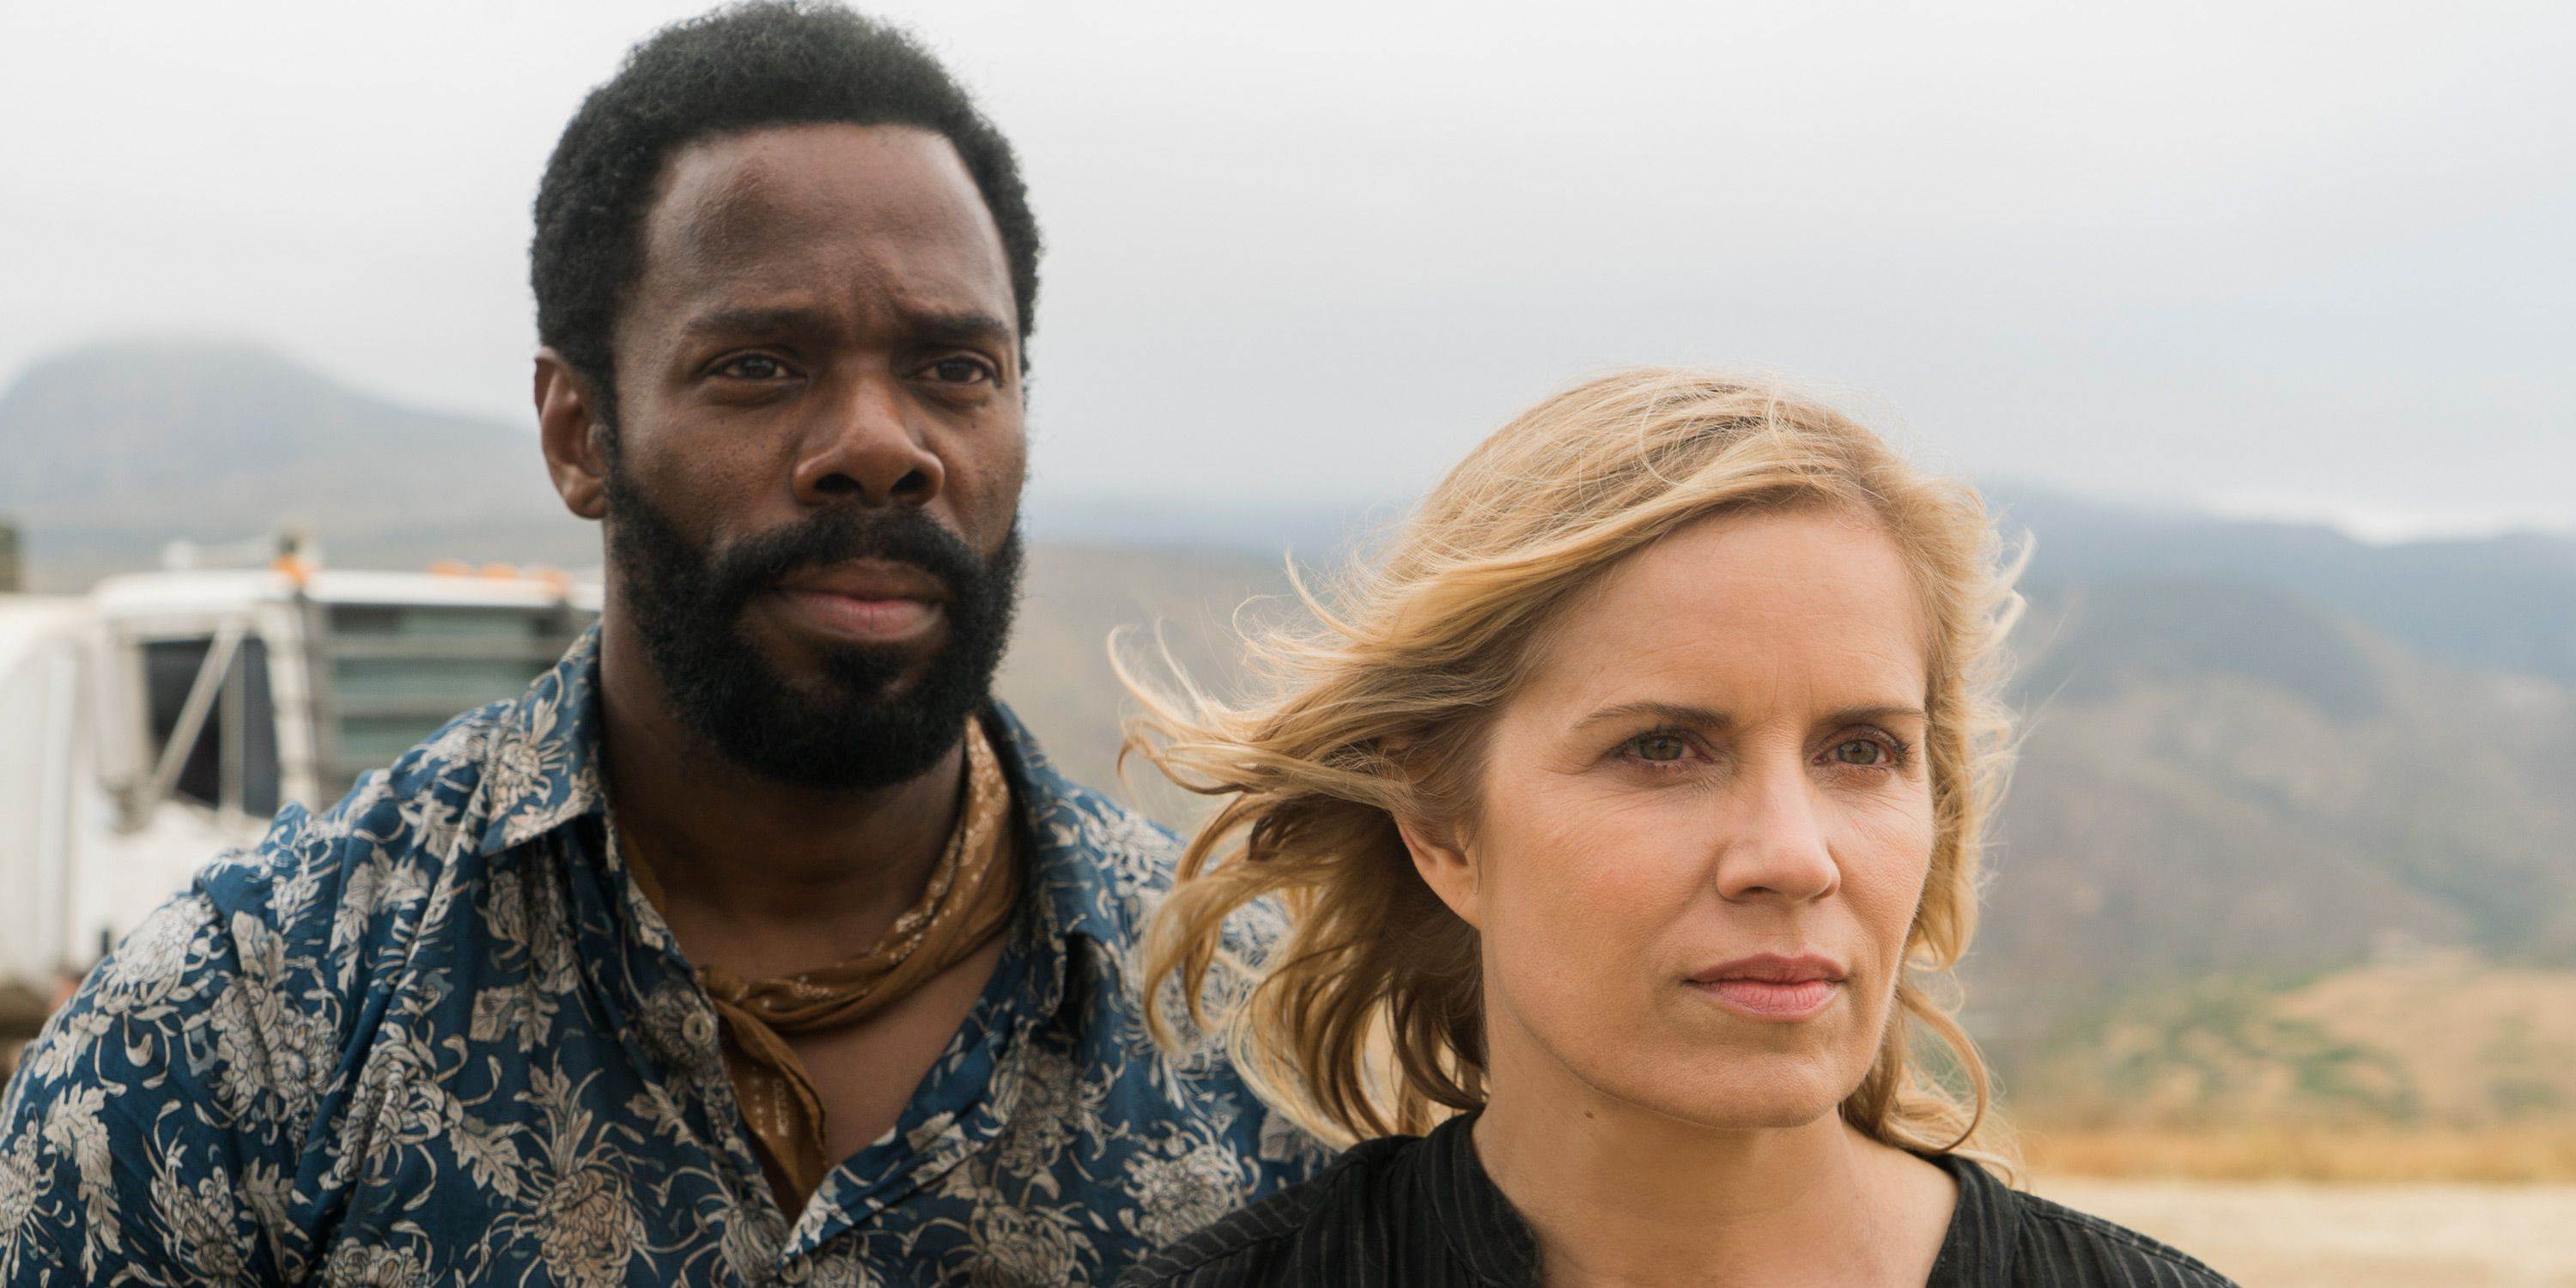 Kim Dickens, Colman Domingo, Fear of the Walking Dead, This Land is My land, Season 3, Episode 13